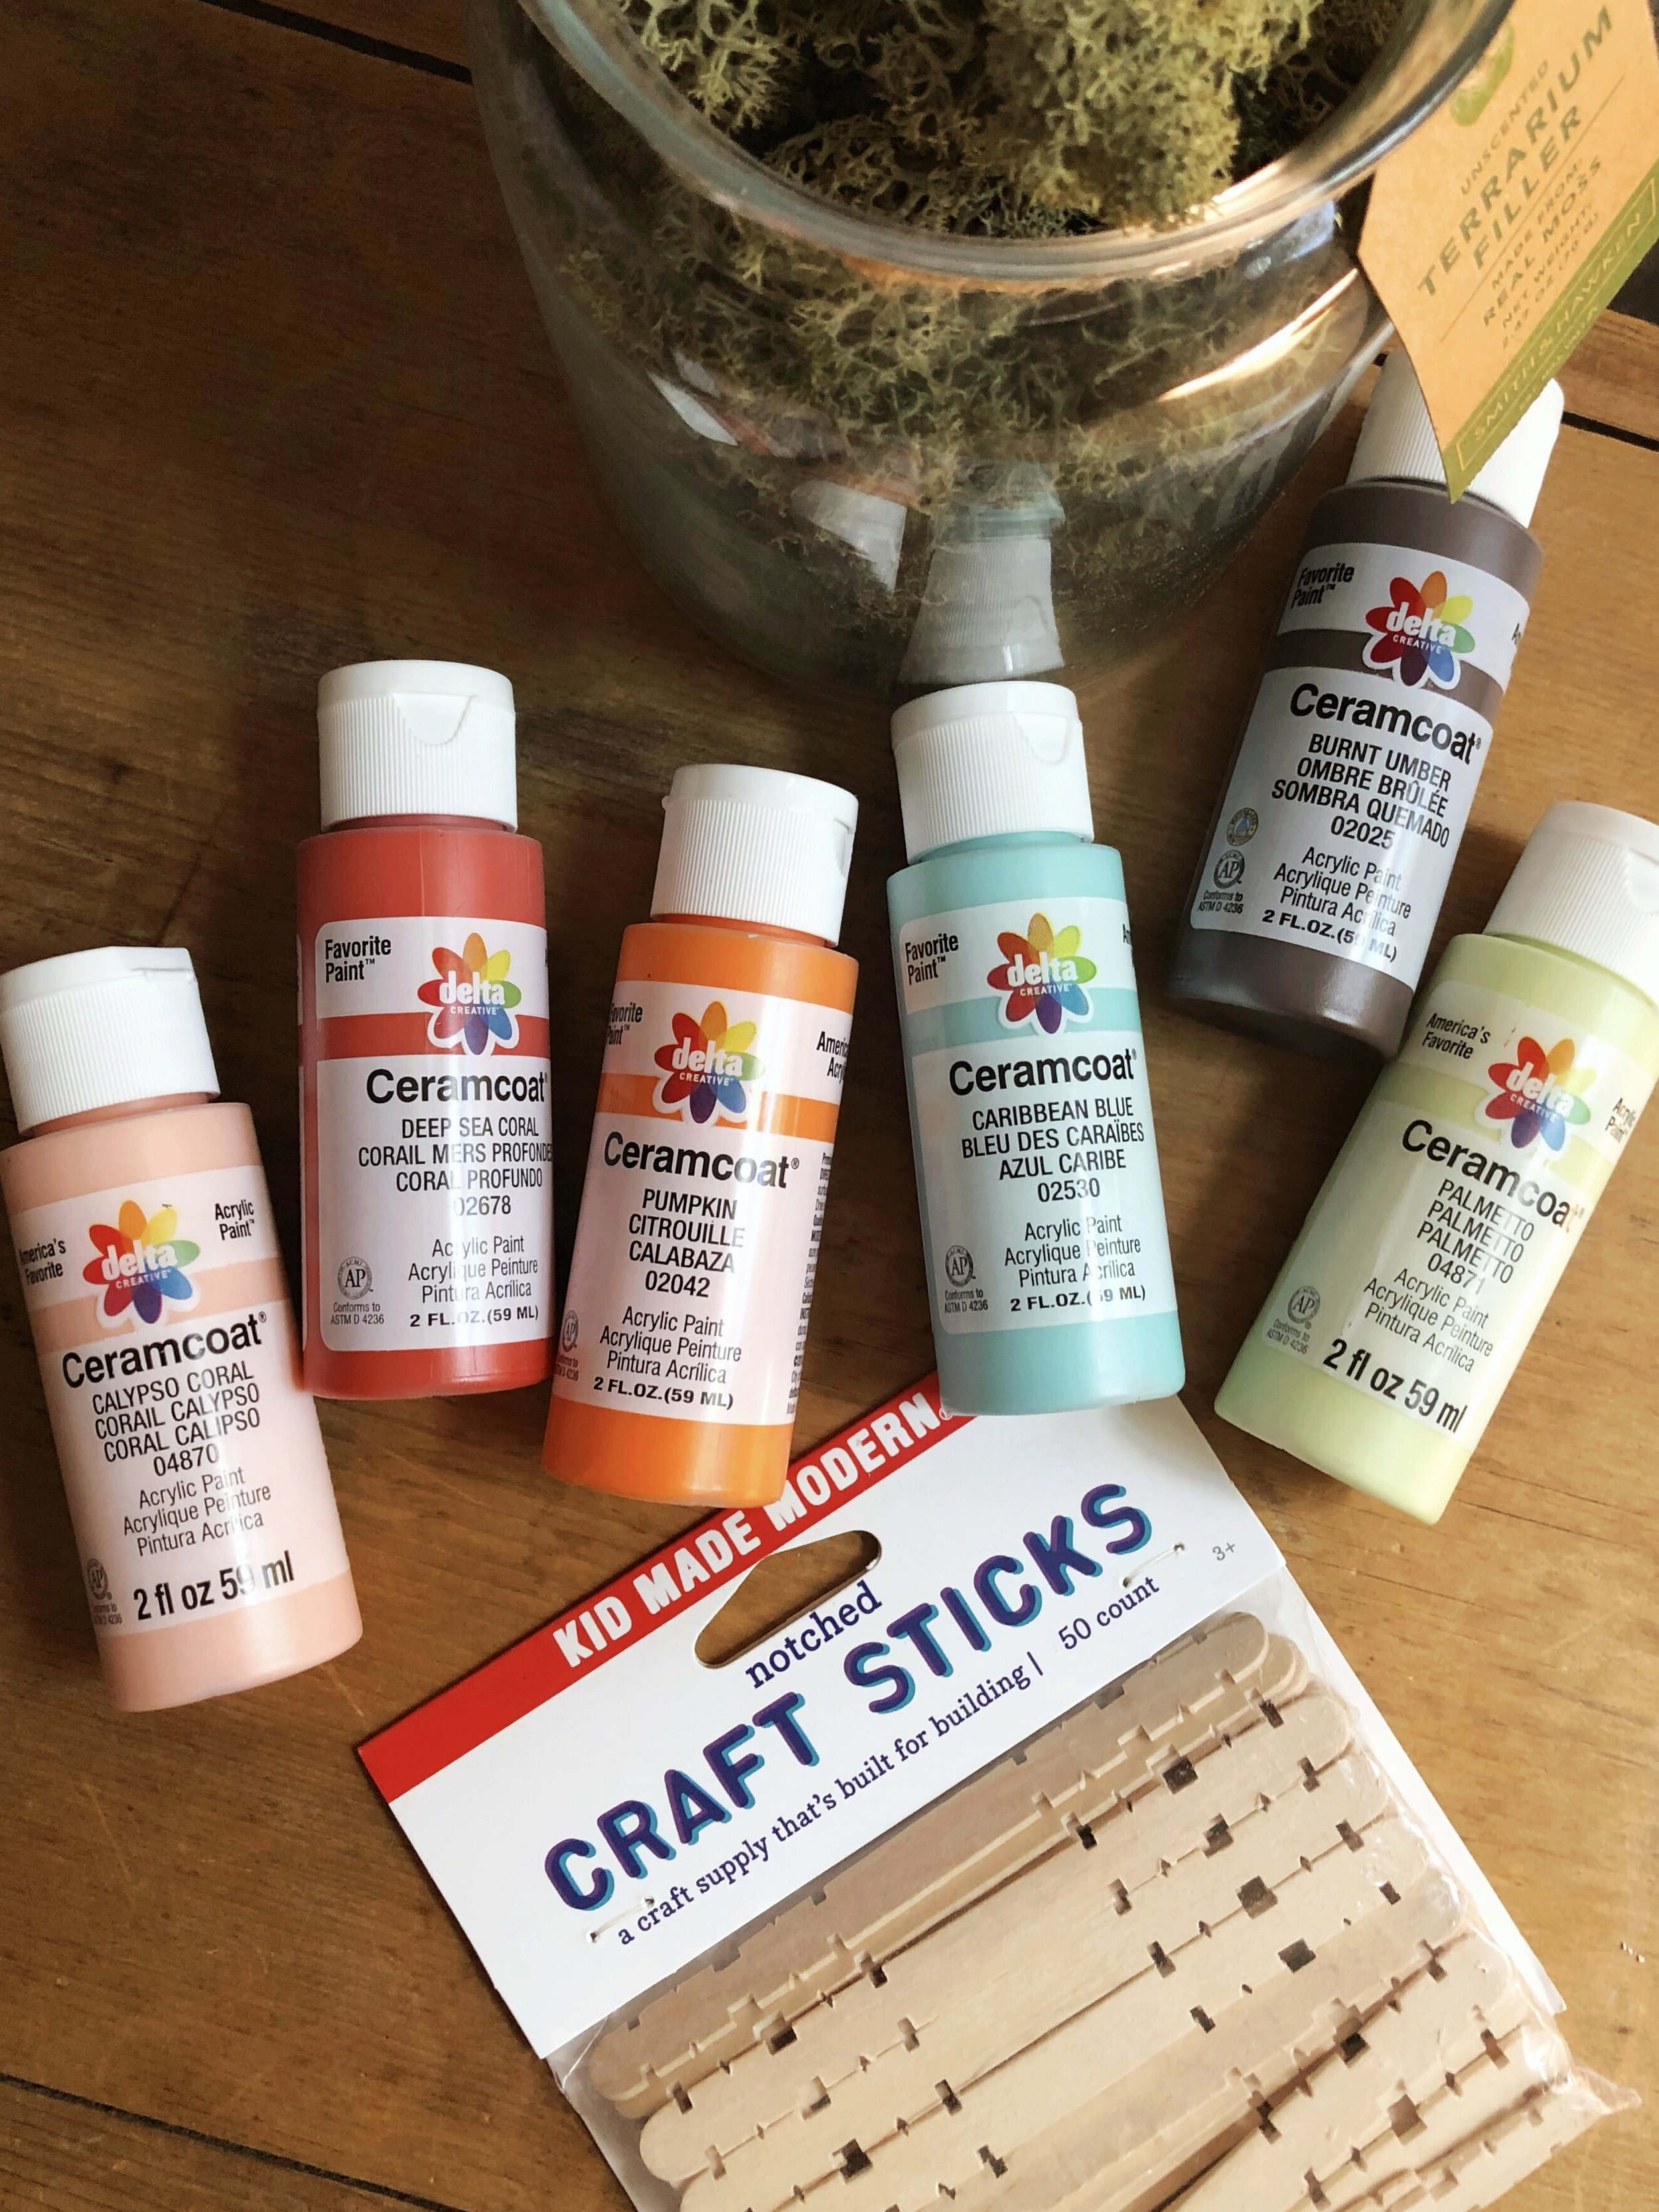 Summer camp throwback craft! Create a one of a kind plater with craft sticks and acrylic paint from Target! #plaidcrafts #craftsticks #target #ceramcoat #getcrafty #kidscrafts #campcrafts #acrylicpaint #moss #summercraft #houseplant #sponsored #DIY #indoorgarden